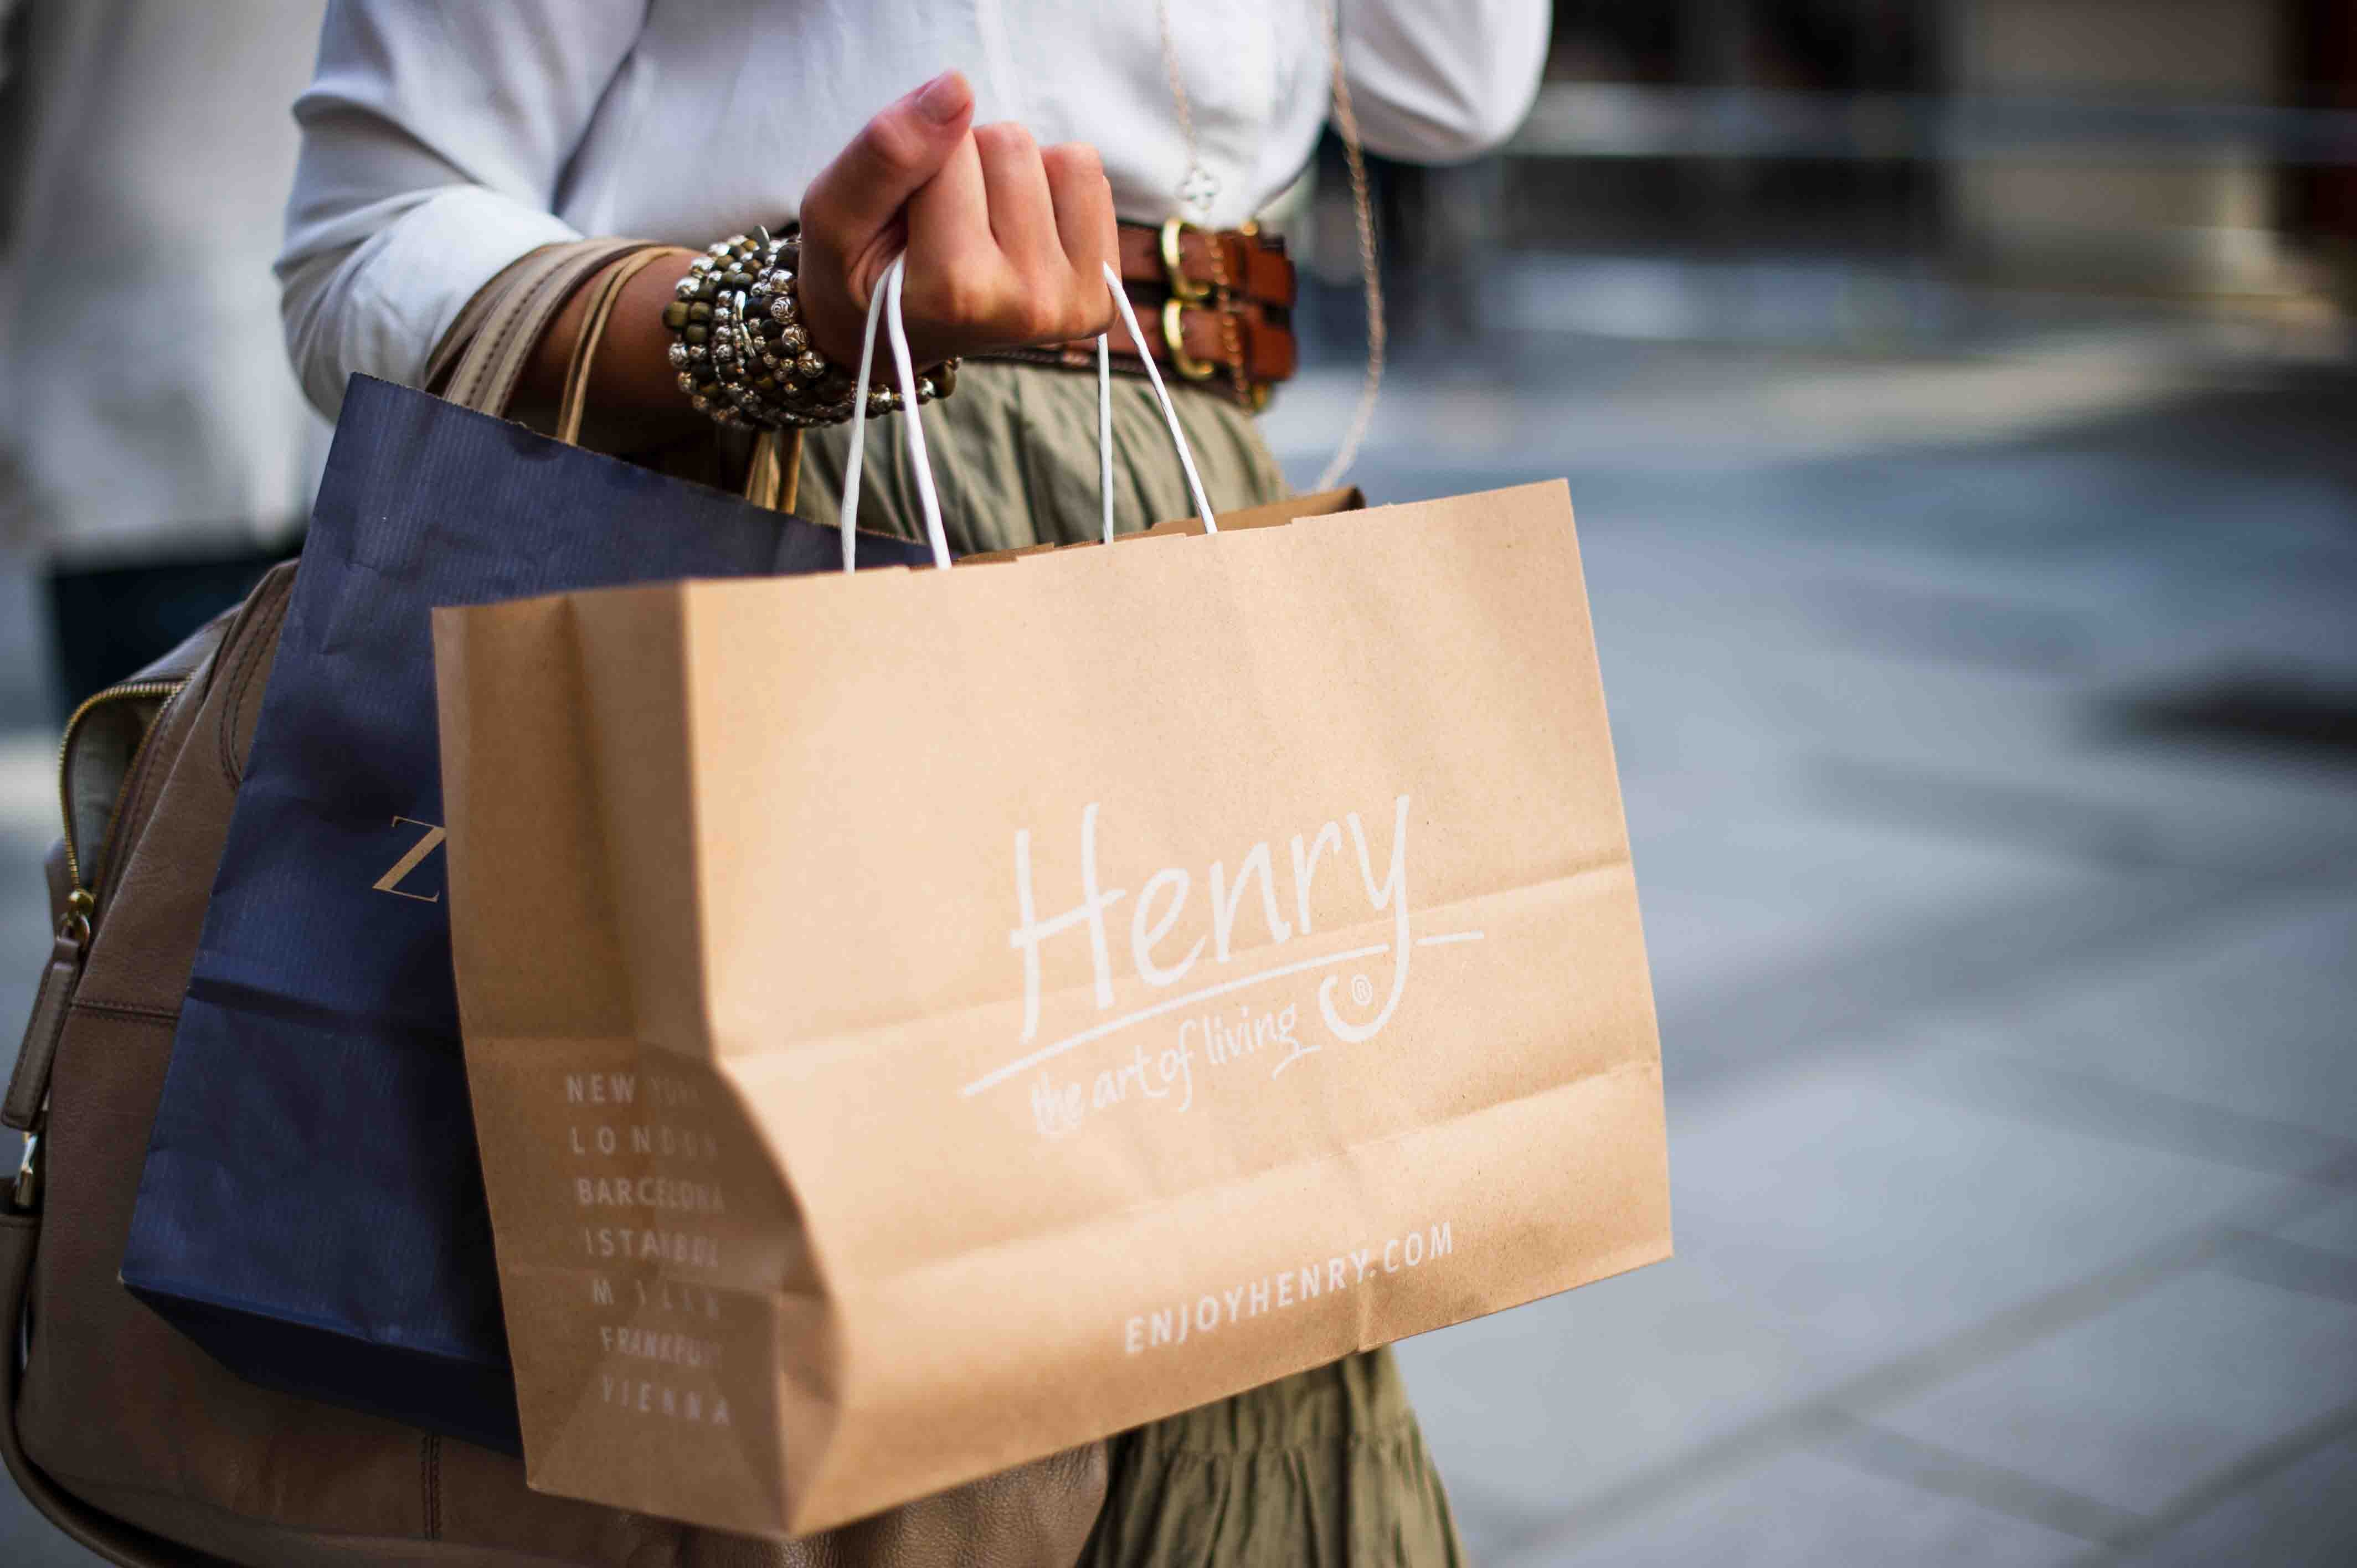 why people buy represented by hand holding shopping bags